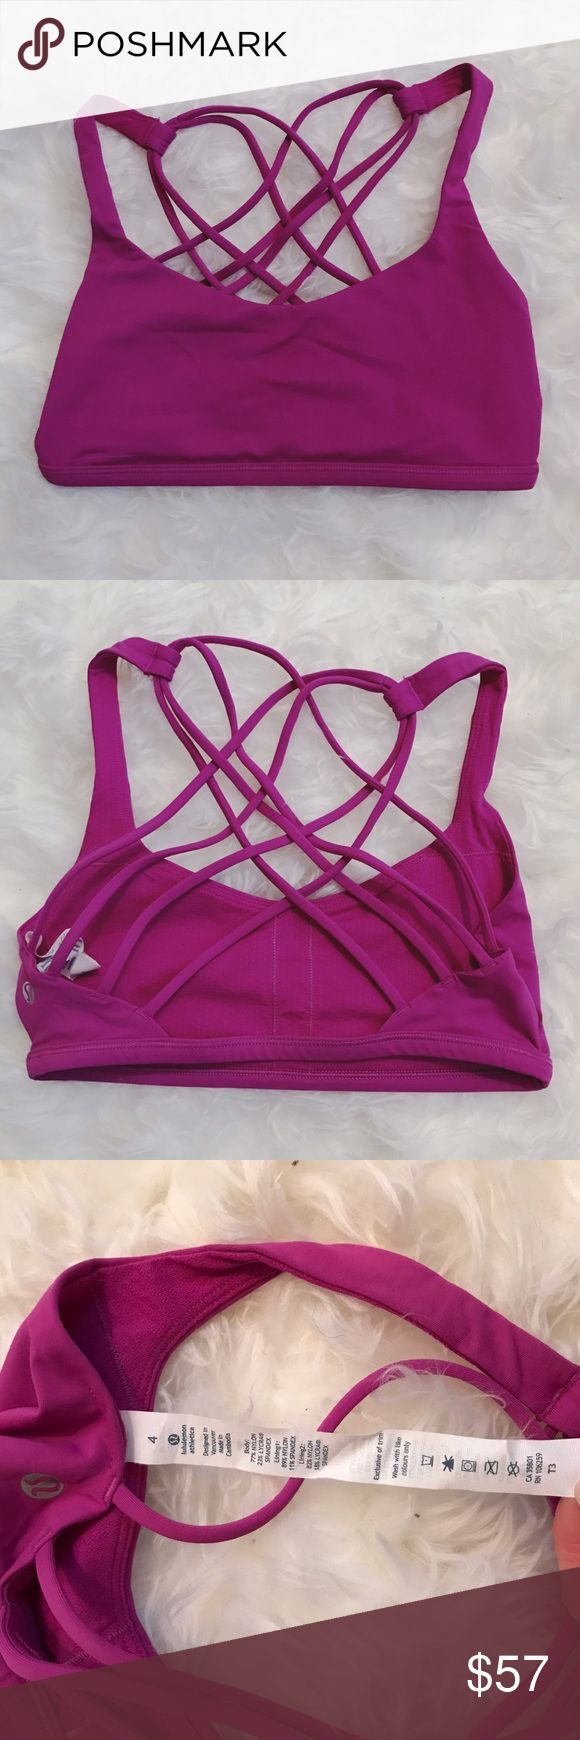 Lululemon Free to be Wild Sports Bra Magenta 4 Won't only once! In excellent condition with no signs of wear. Free to be Wild sports bra by Lululemon in pink/purple magenta color. Size 4. Feel free to make an offer or ask for a custom bundle! lululemon athletica Intimates & Sleepwear Bras